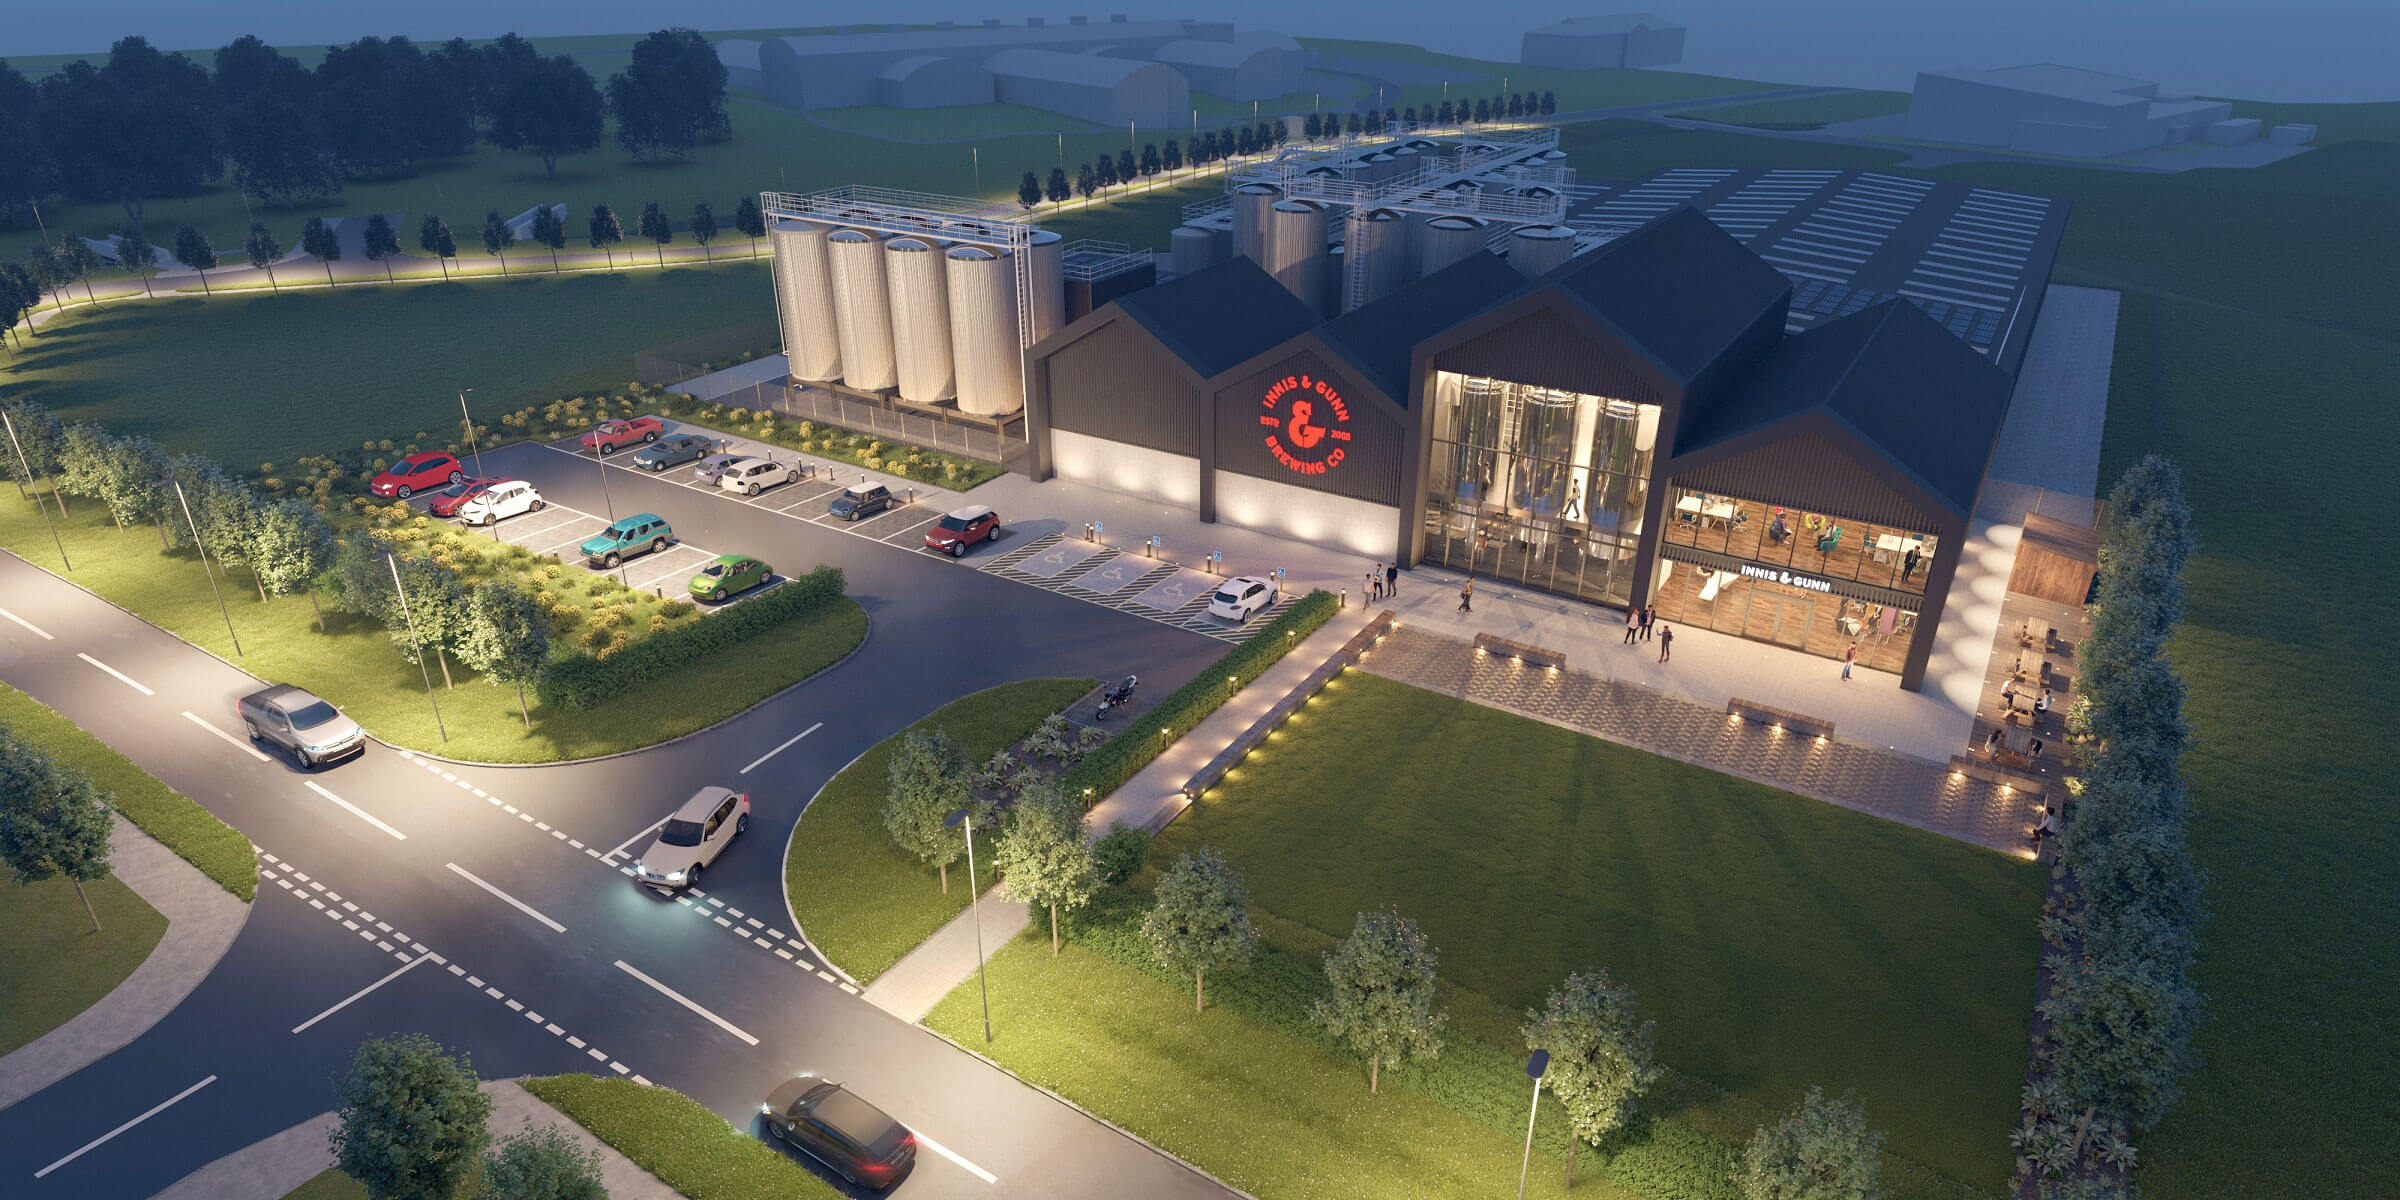 Scottish craft brewer Innis & Gunn has begun planning a major new brewery at Heriot-Watt University's Research Park to the west of Edinburgh, Scotland.